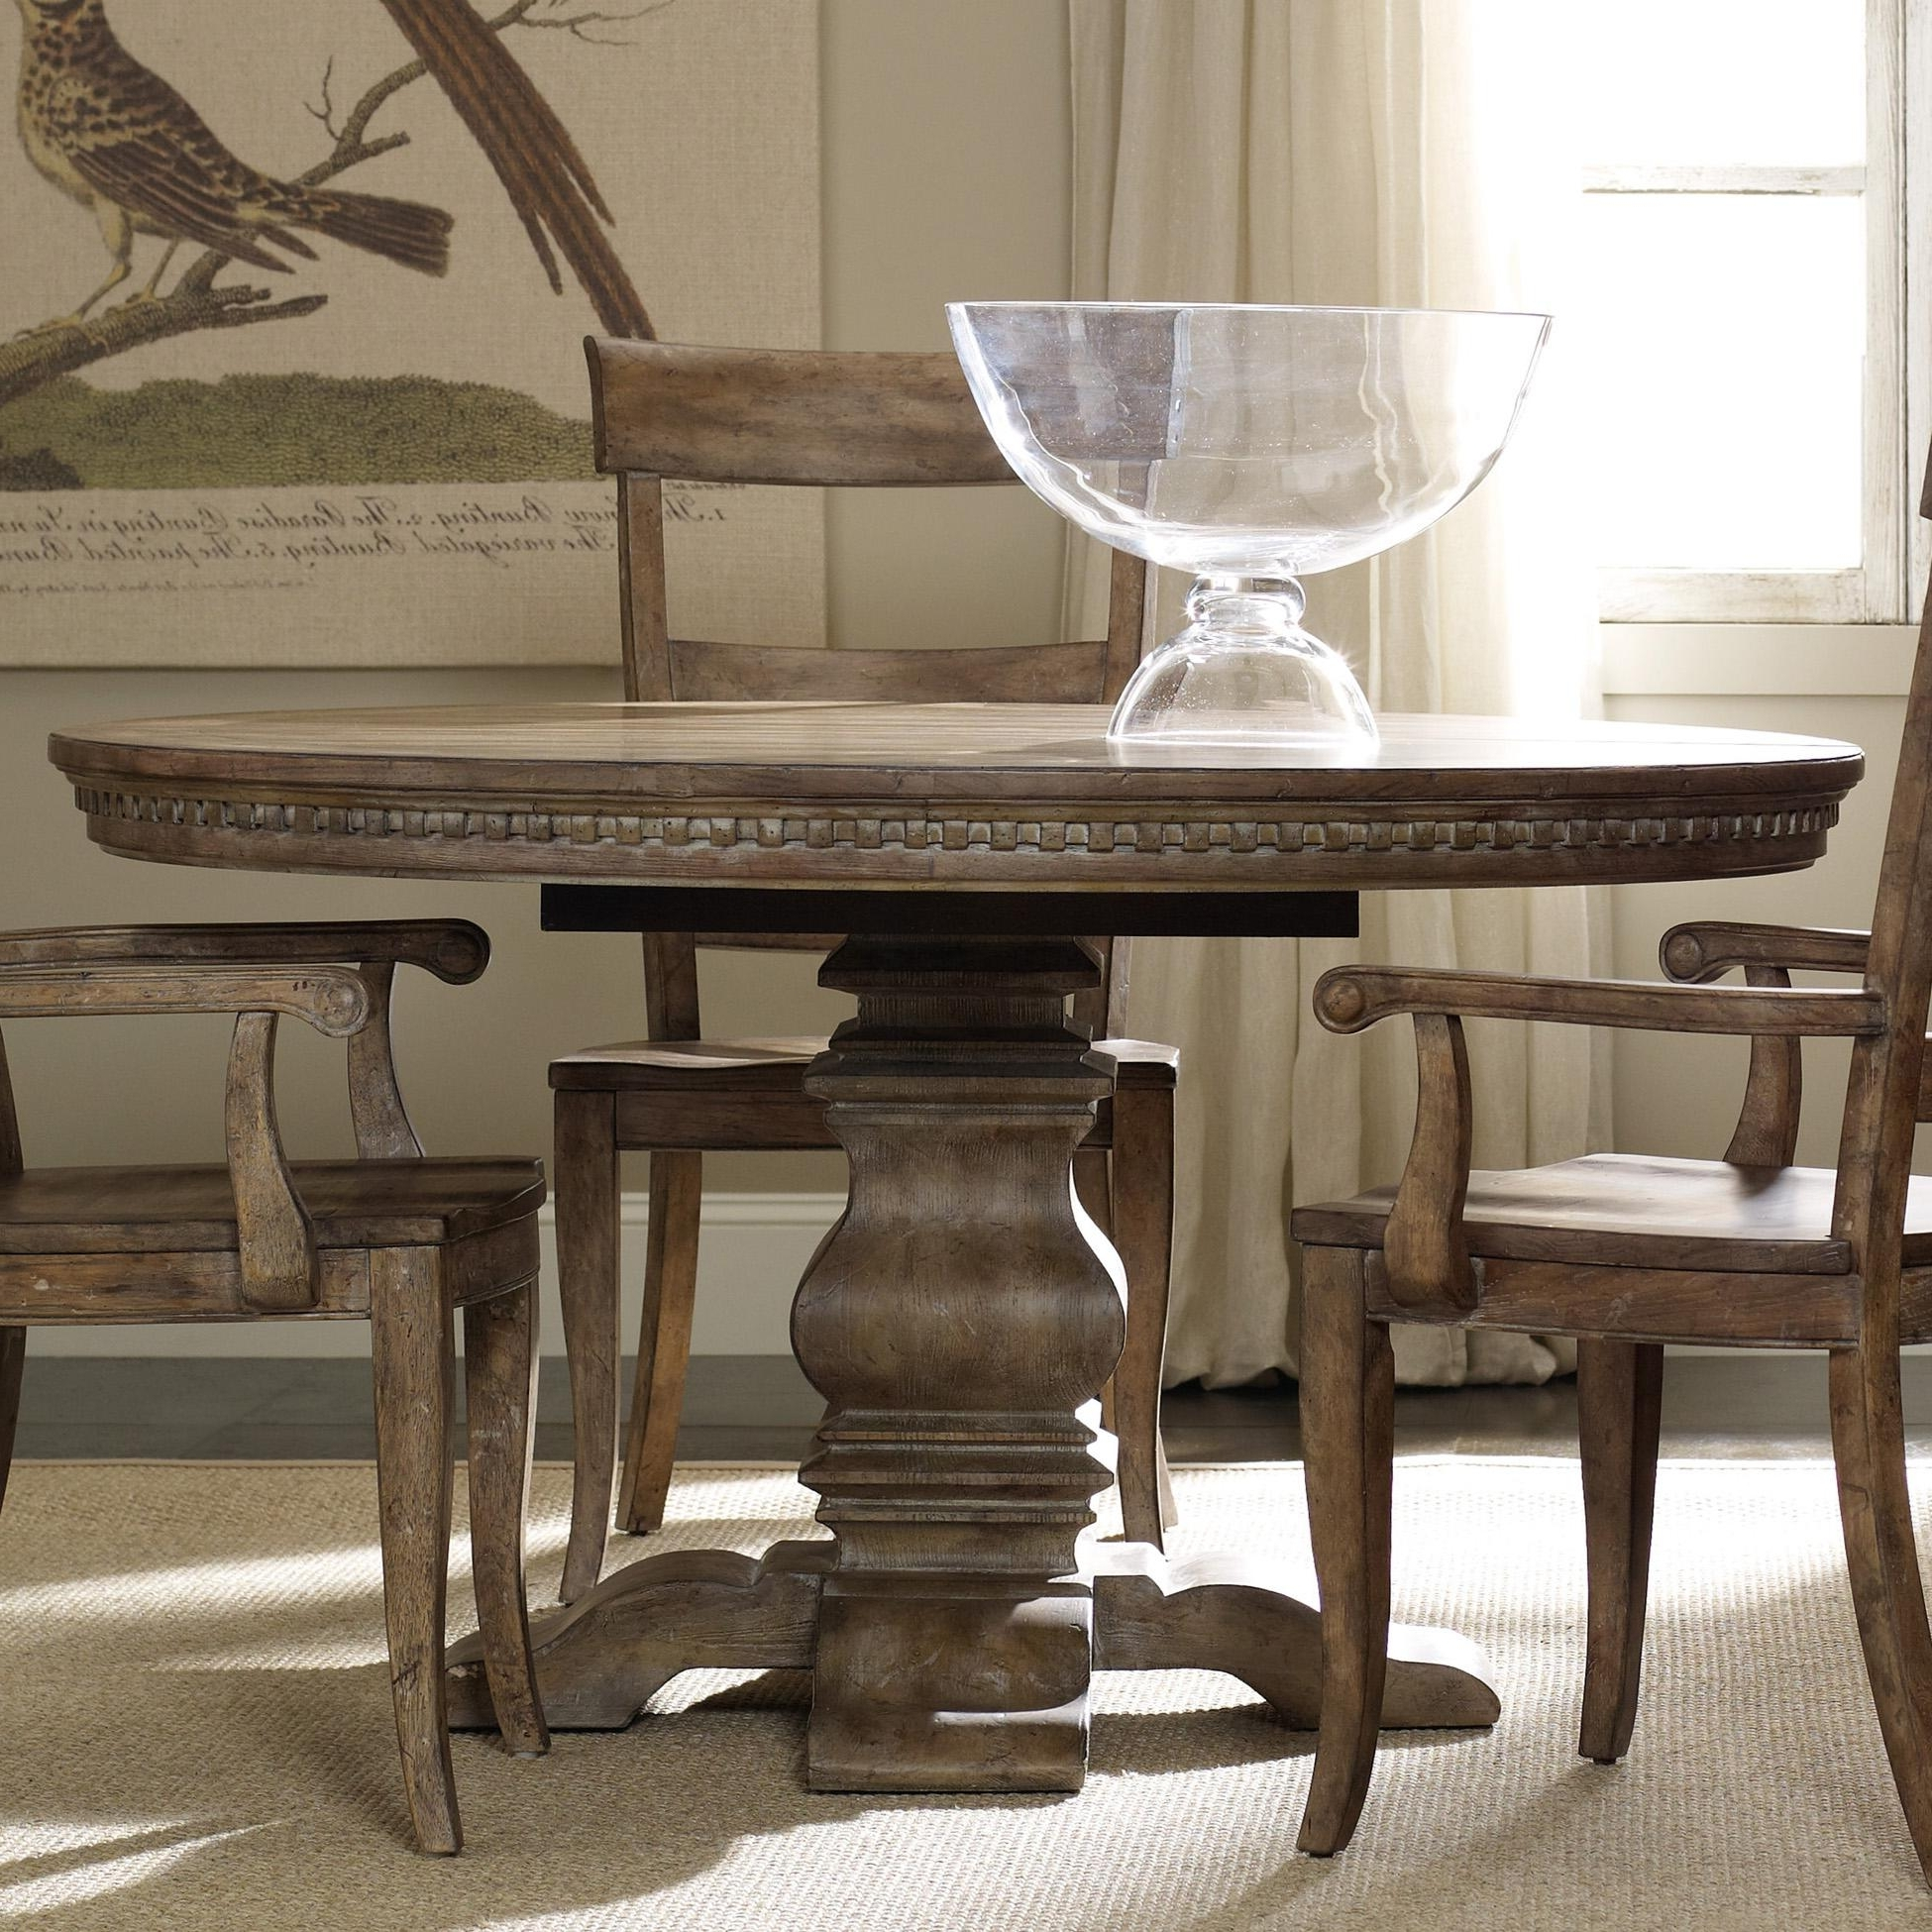 Extending Rectangular Dining Tables Inside Most Popular Hamilton Home Sorella Round Dining Table With Pedestal Base And  (View 9 of 25)